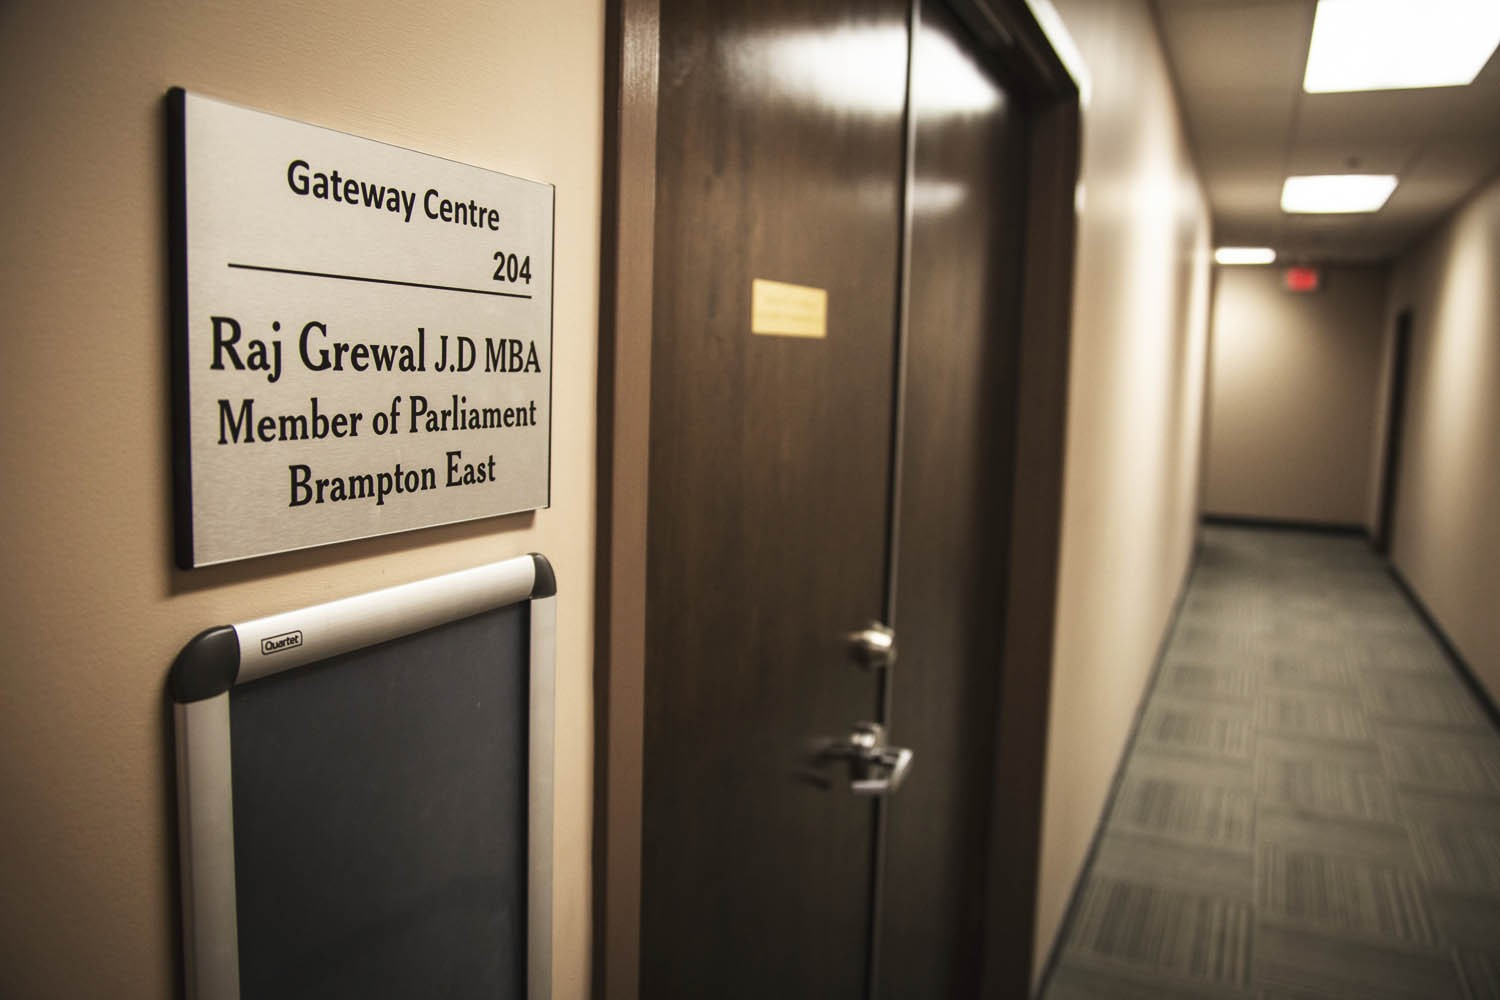 Grewal's gambling addiction raises questions about security protocols, opposition MPs say